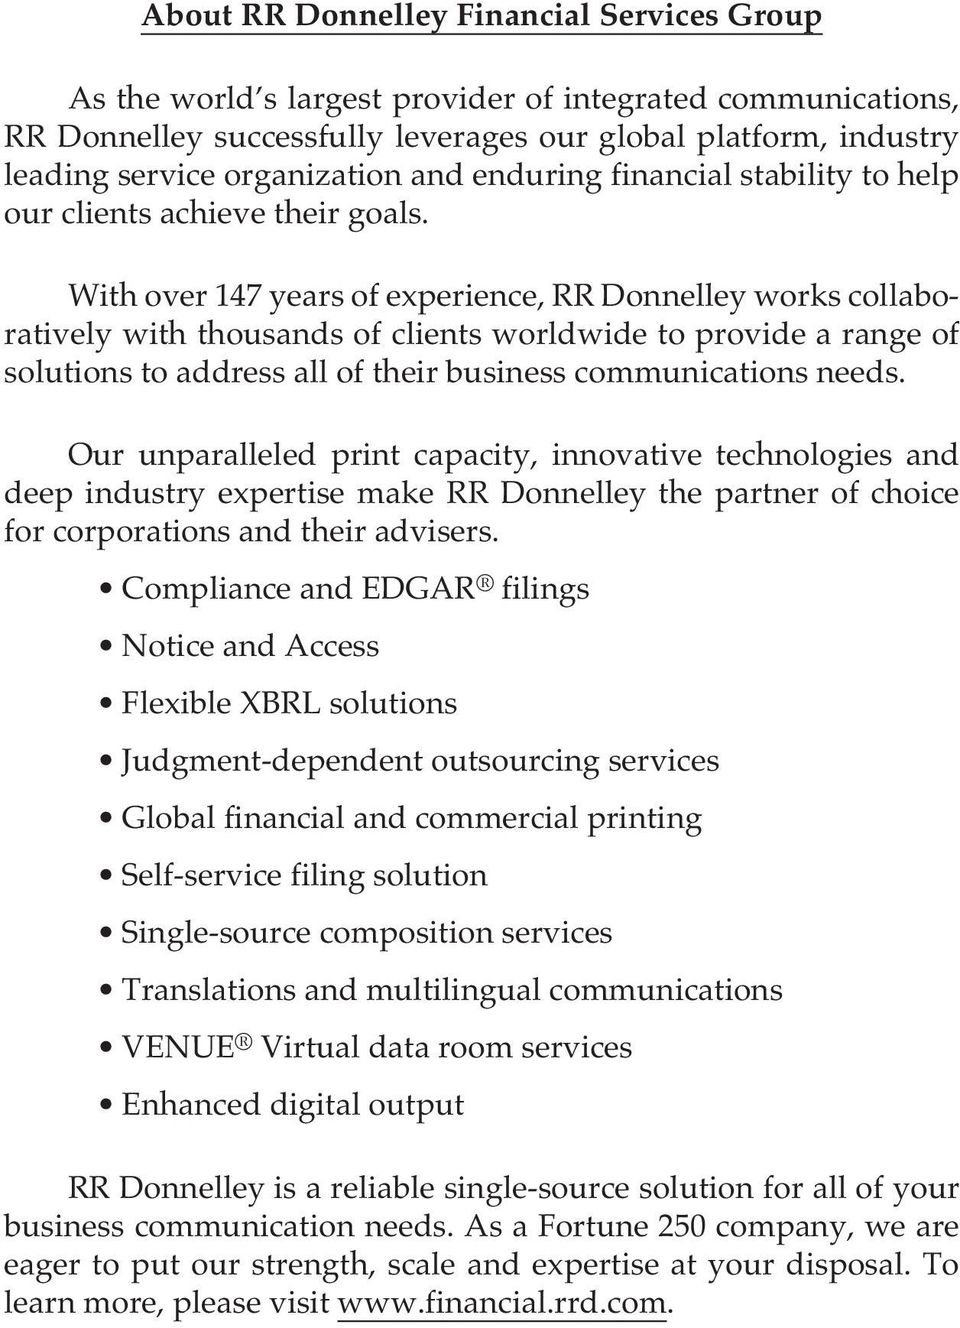 With over 147 years of experience, RR Donnelley works collaboratively with thousands of clients worldwide to provide a range of solutions to address all of their business communications needs.